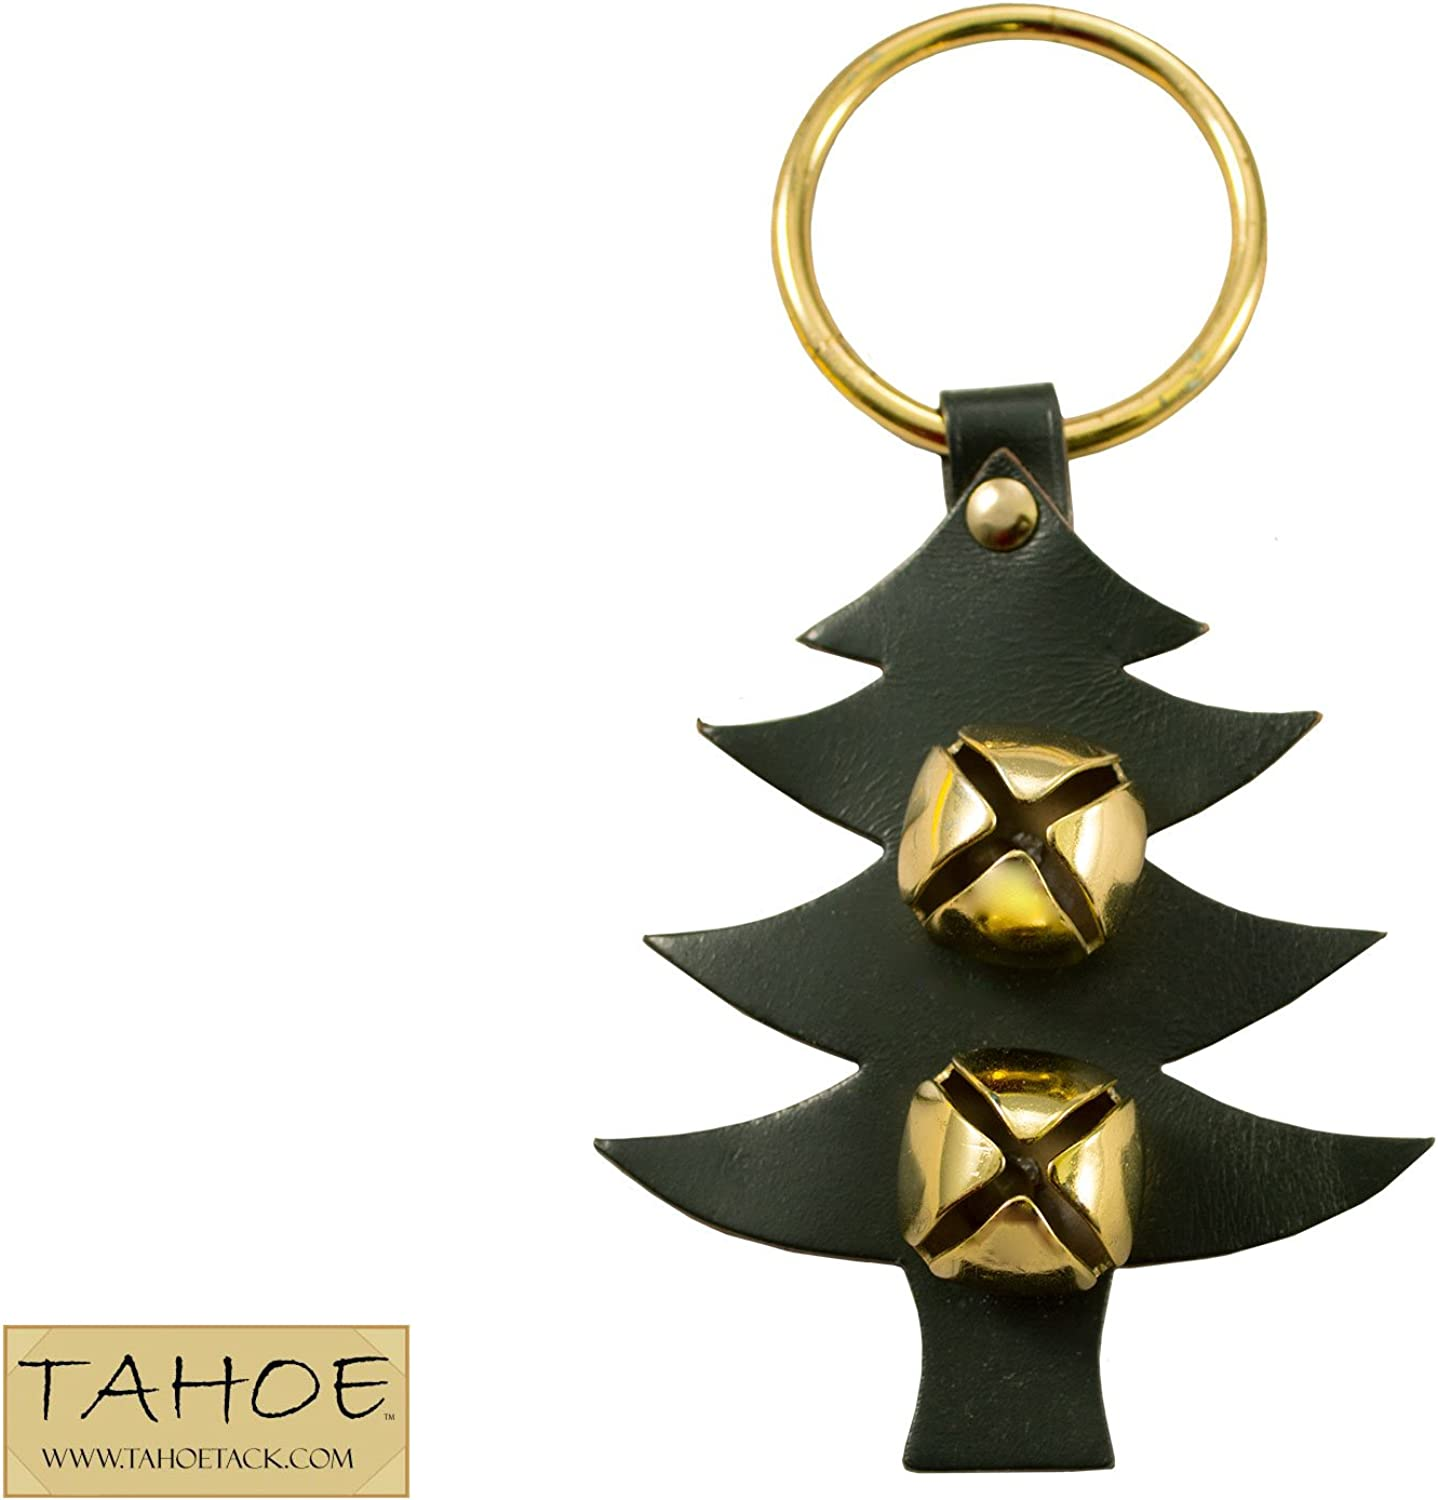 Tahoe Tack Fancy Holiday Themed Brass Shaped Sleigh Bell Leather Door Hangers